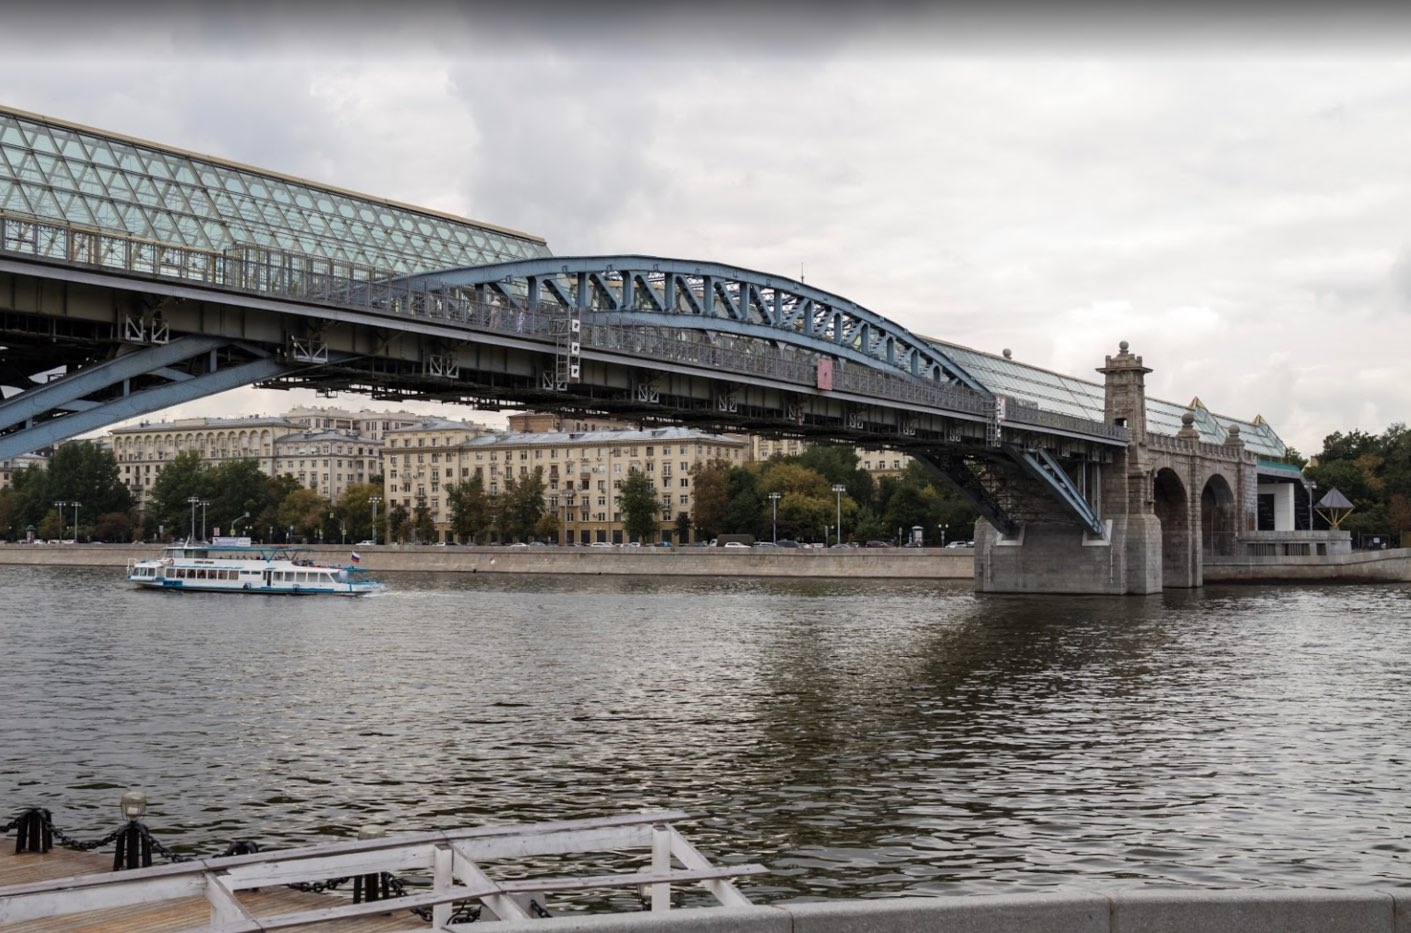 Pushkinskiy bridge